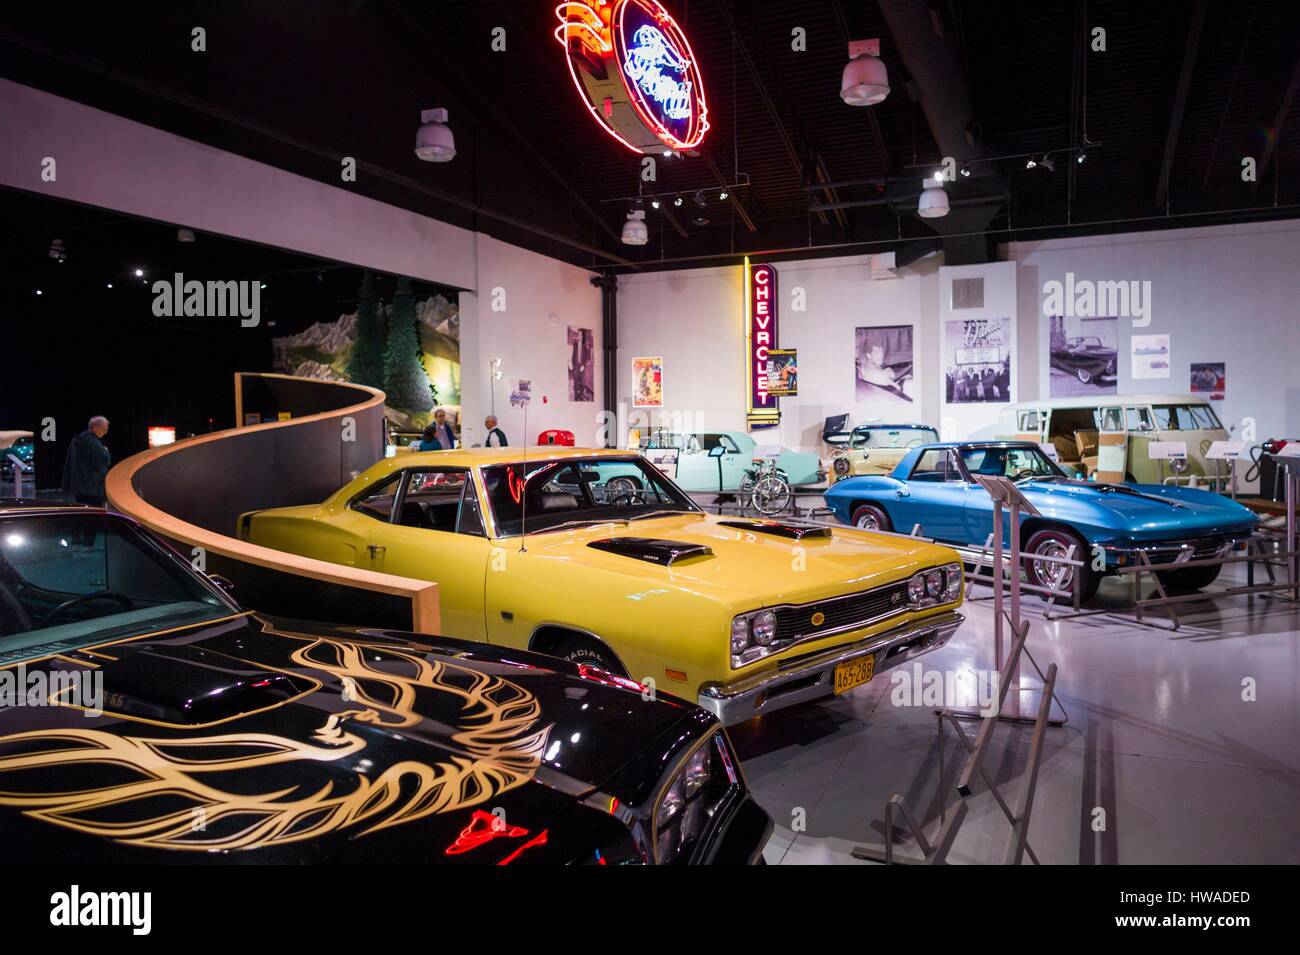 Aaca Auto Museum Stock Photos Aaca Auto Museum Stock Images Alamy - Aaca museum car show